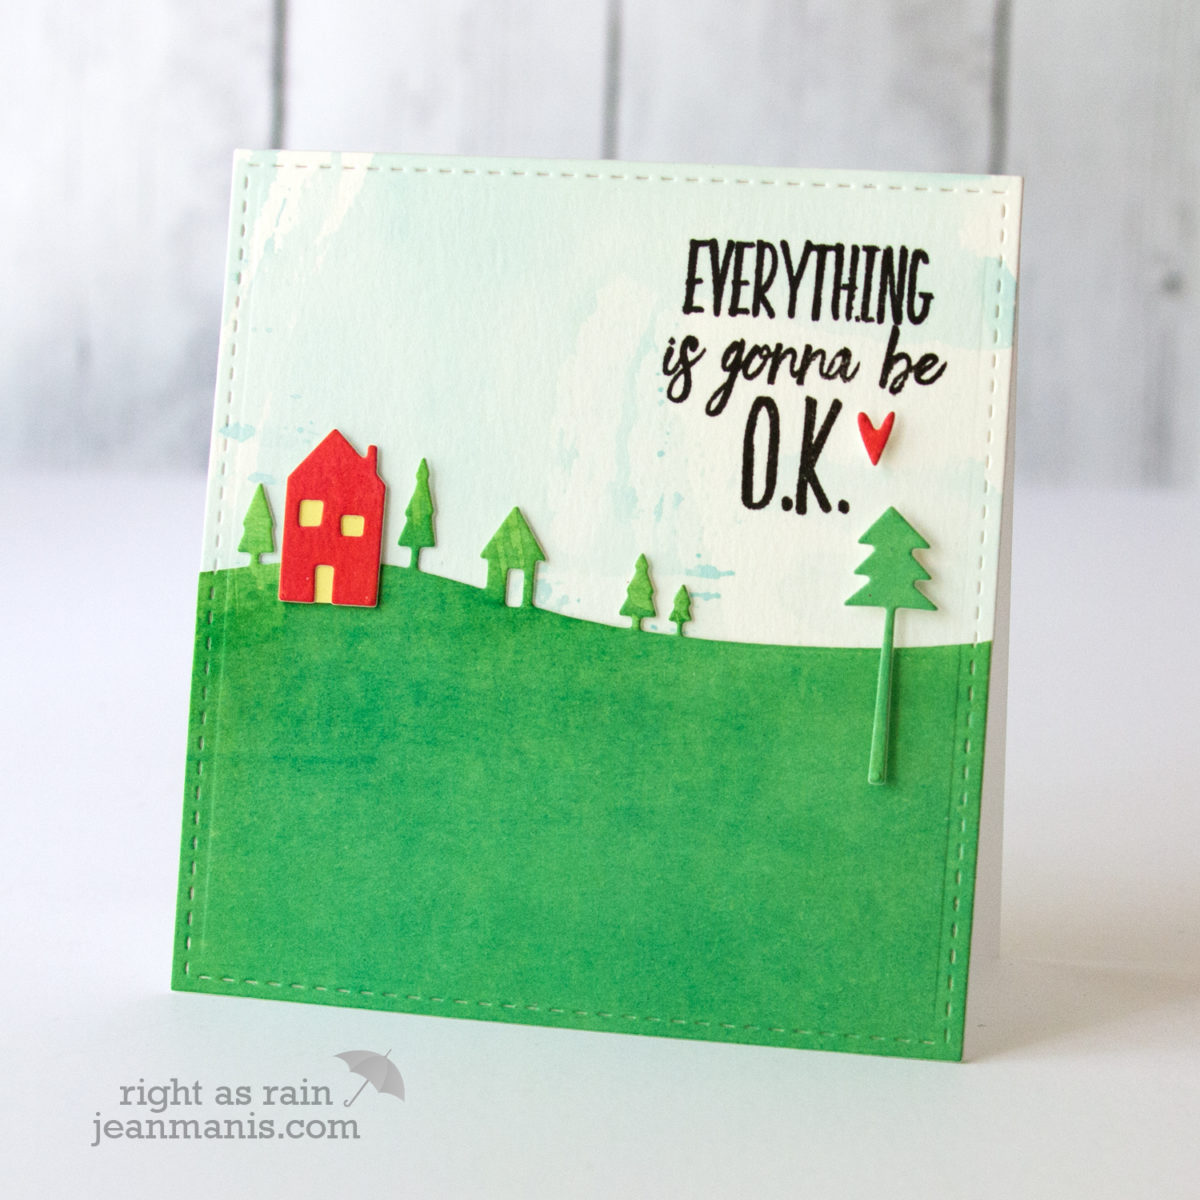 Die-Cut Encouragement Card